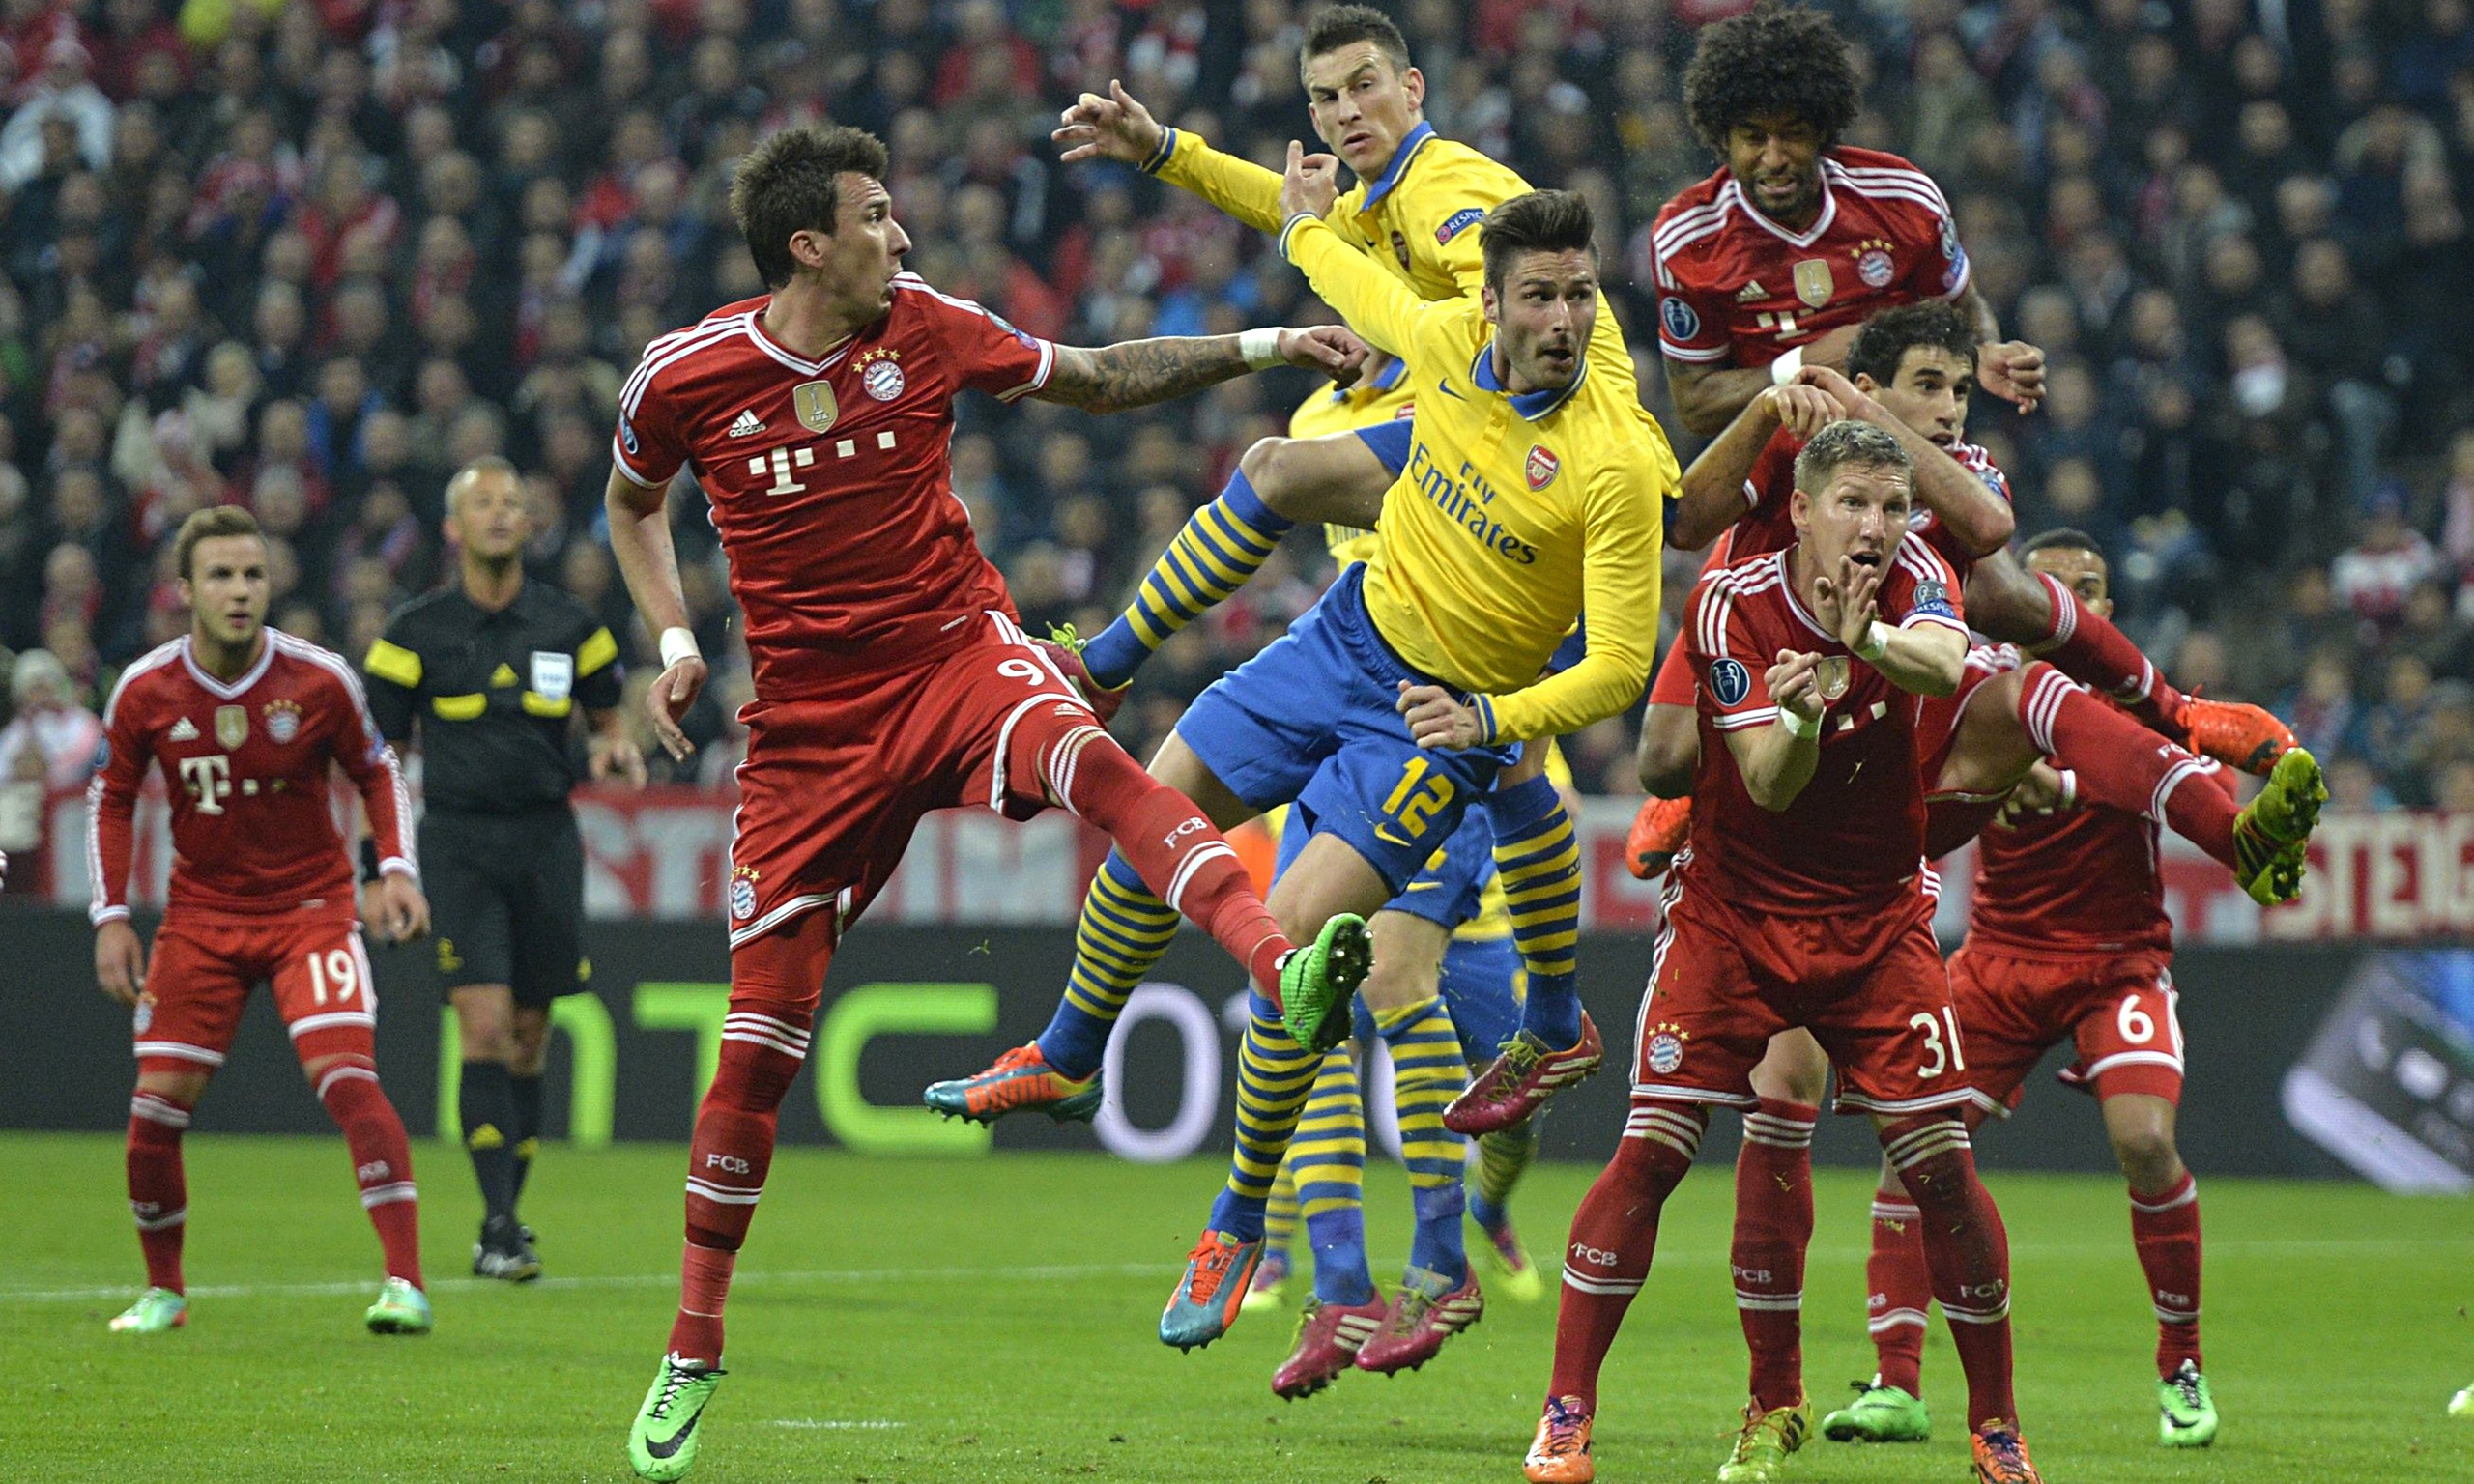 Arsenal will battle with Bayern Munich for Group F top spot.